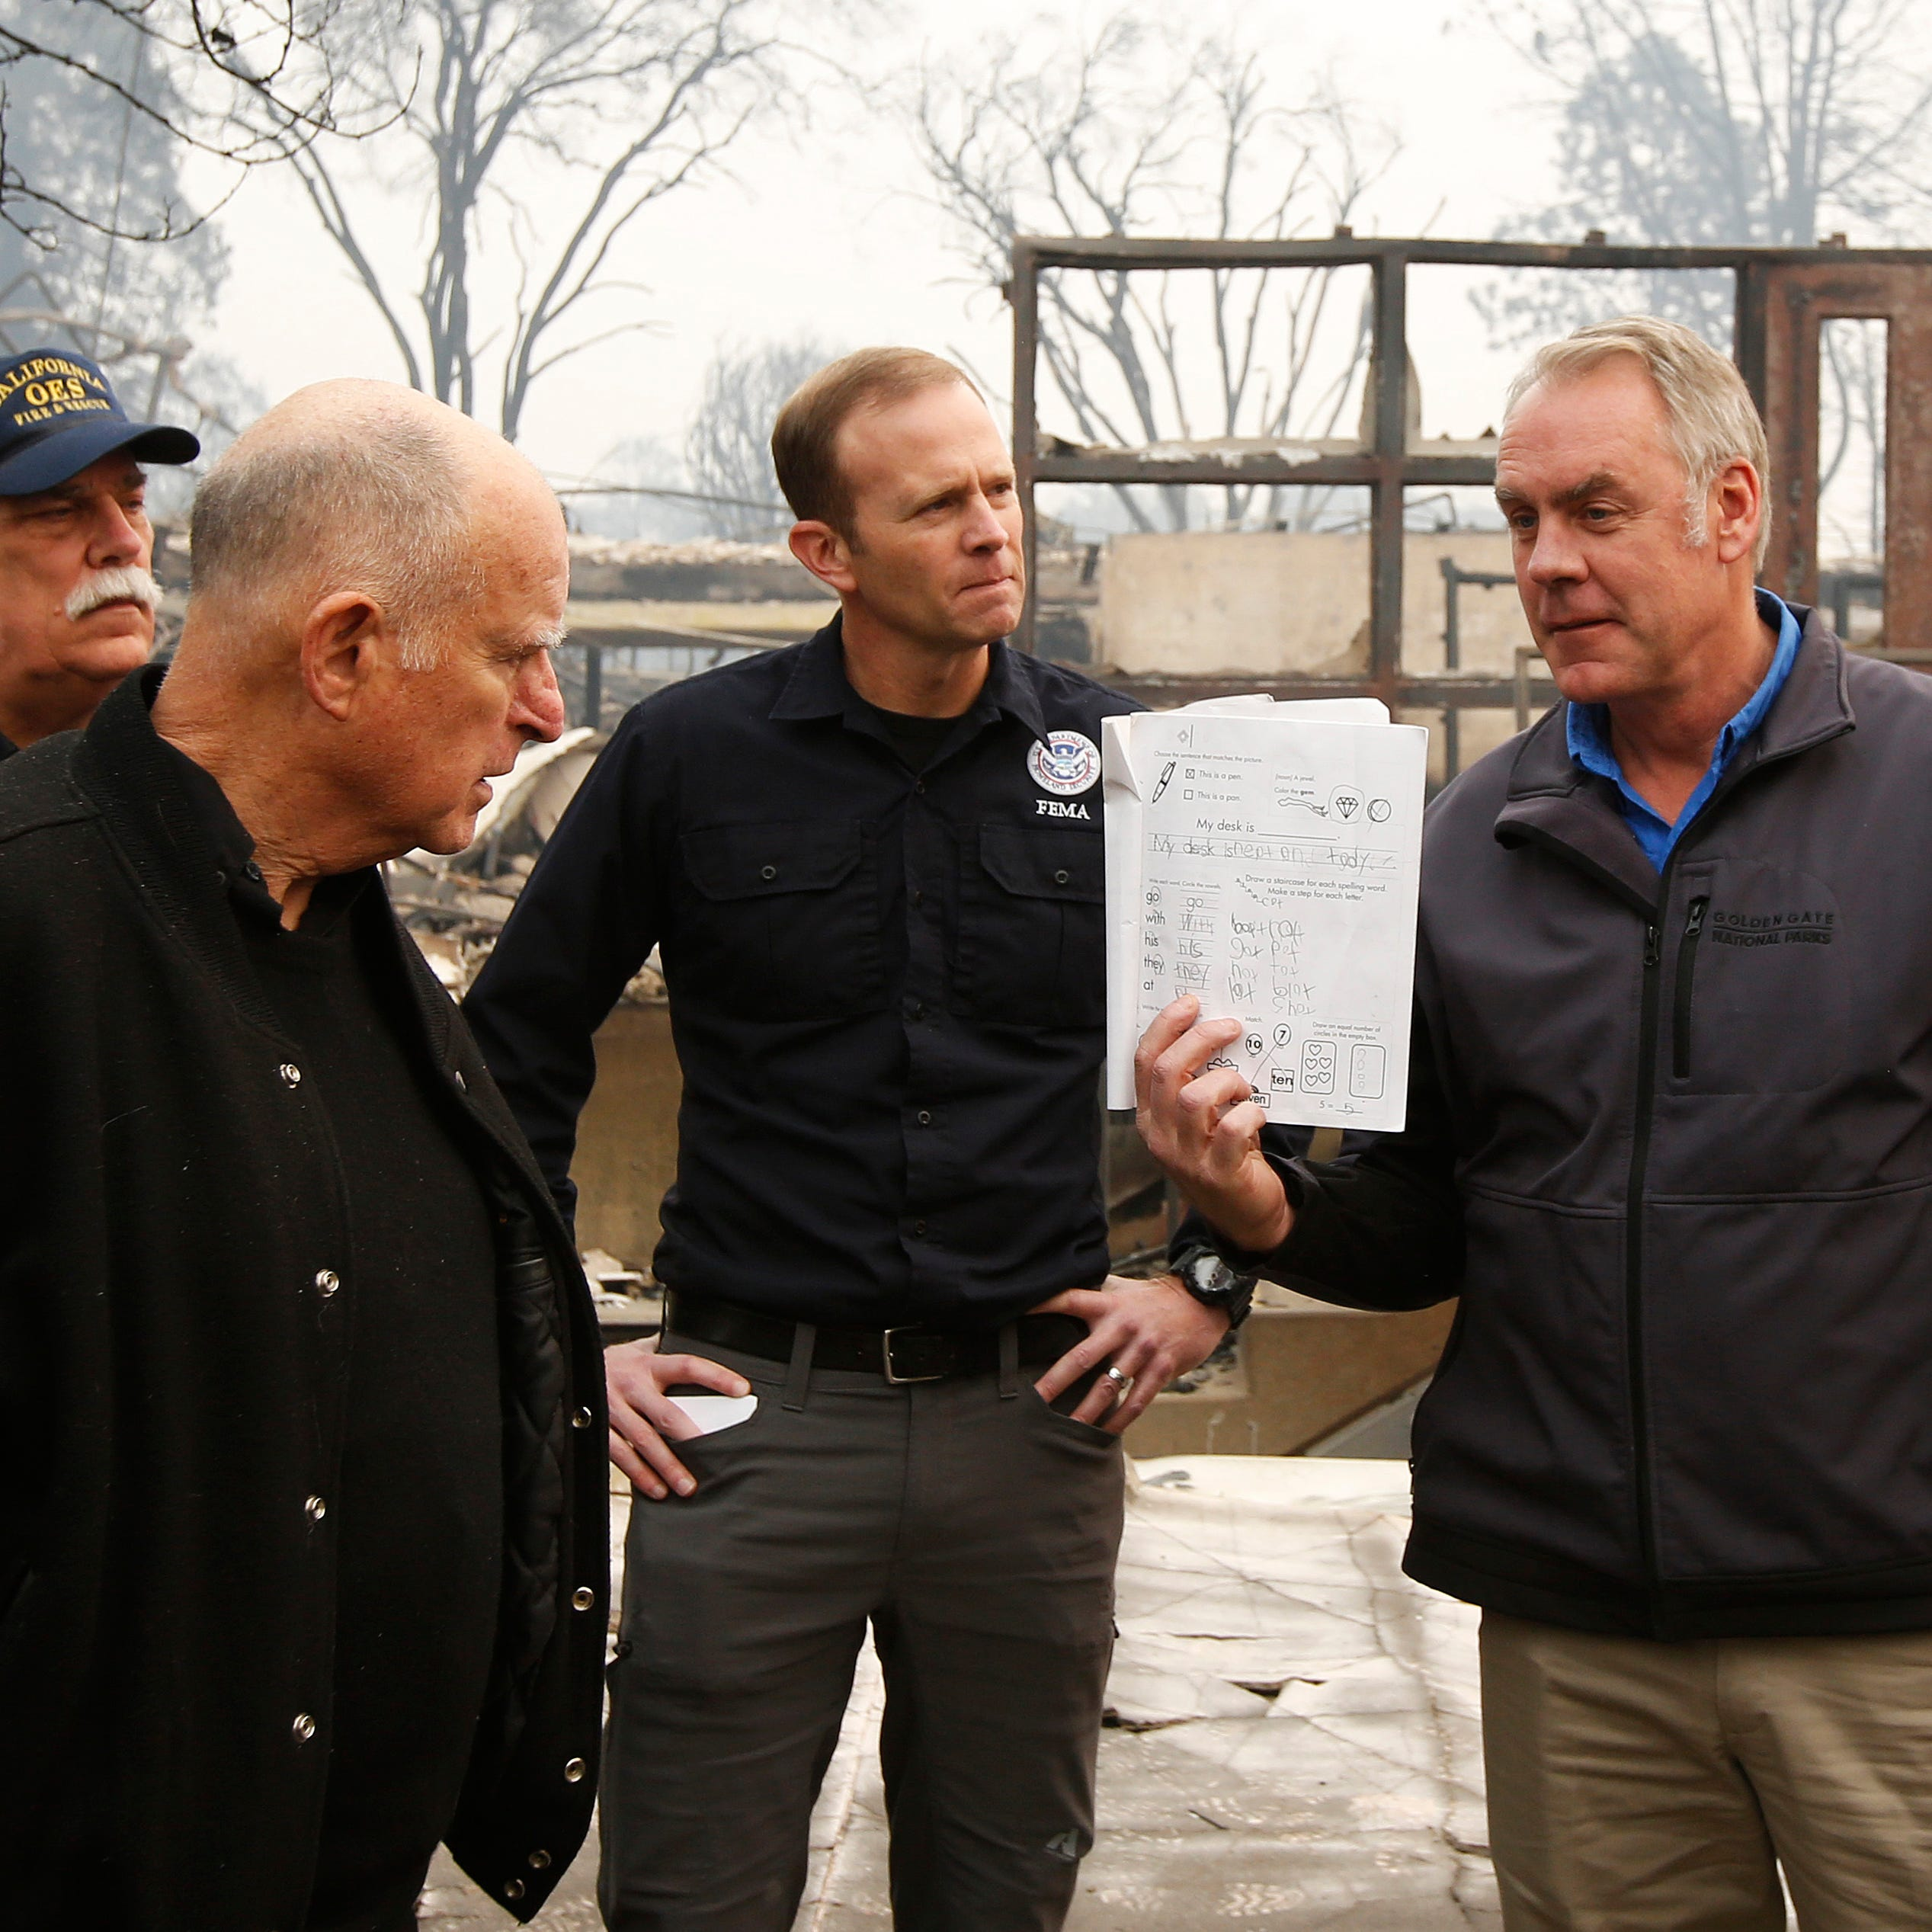 Secretary Zinke, California Gov. Brown: Camp Fire worst disaster they've seen